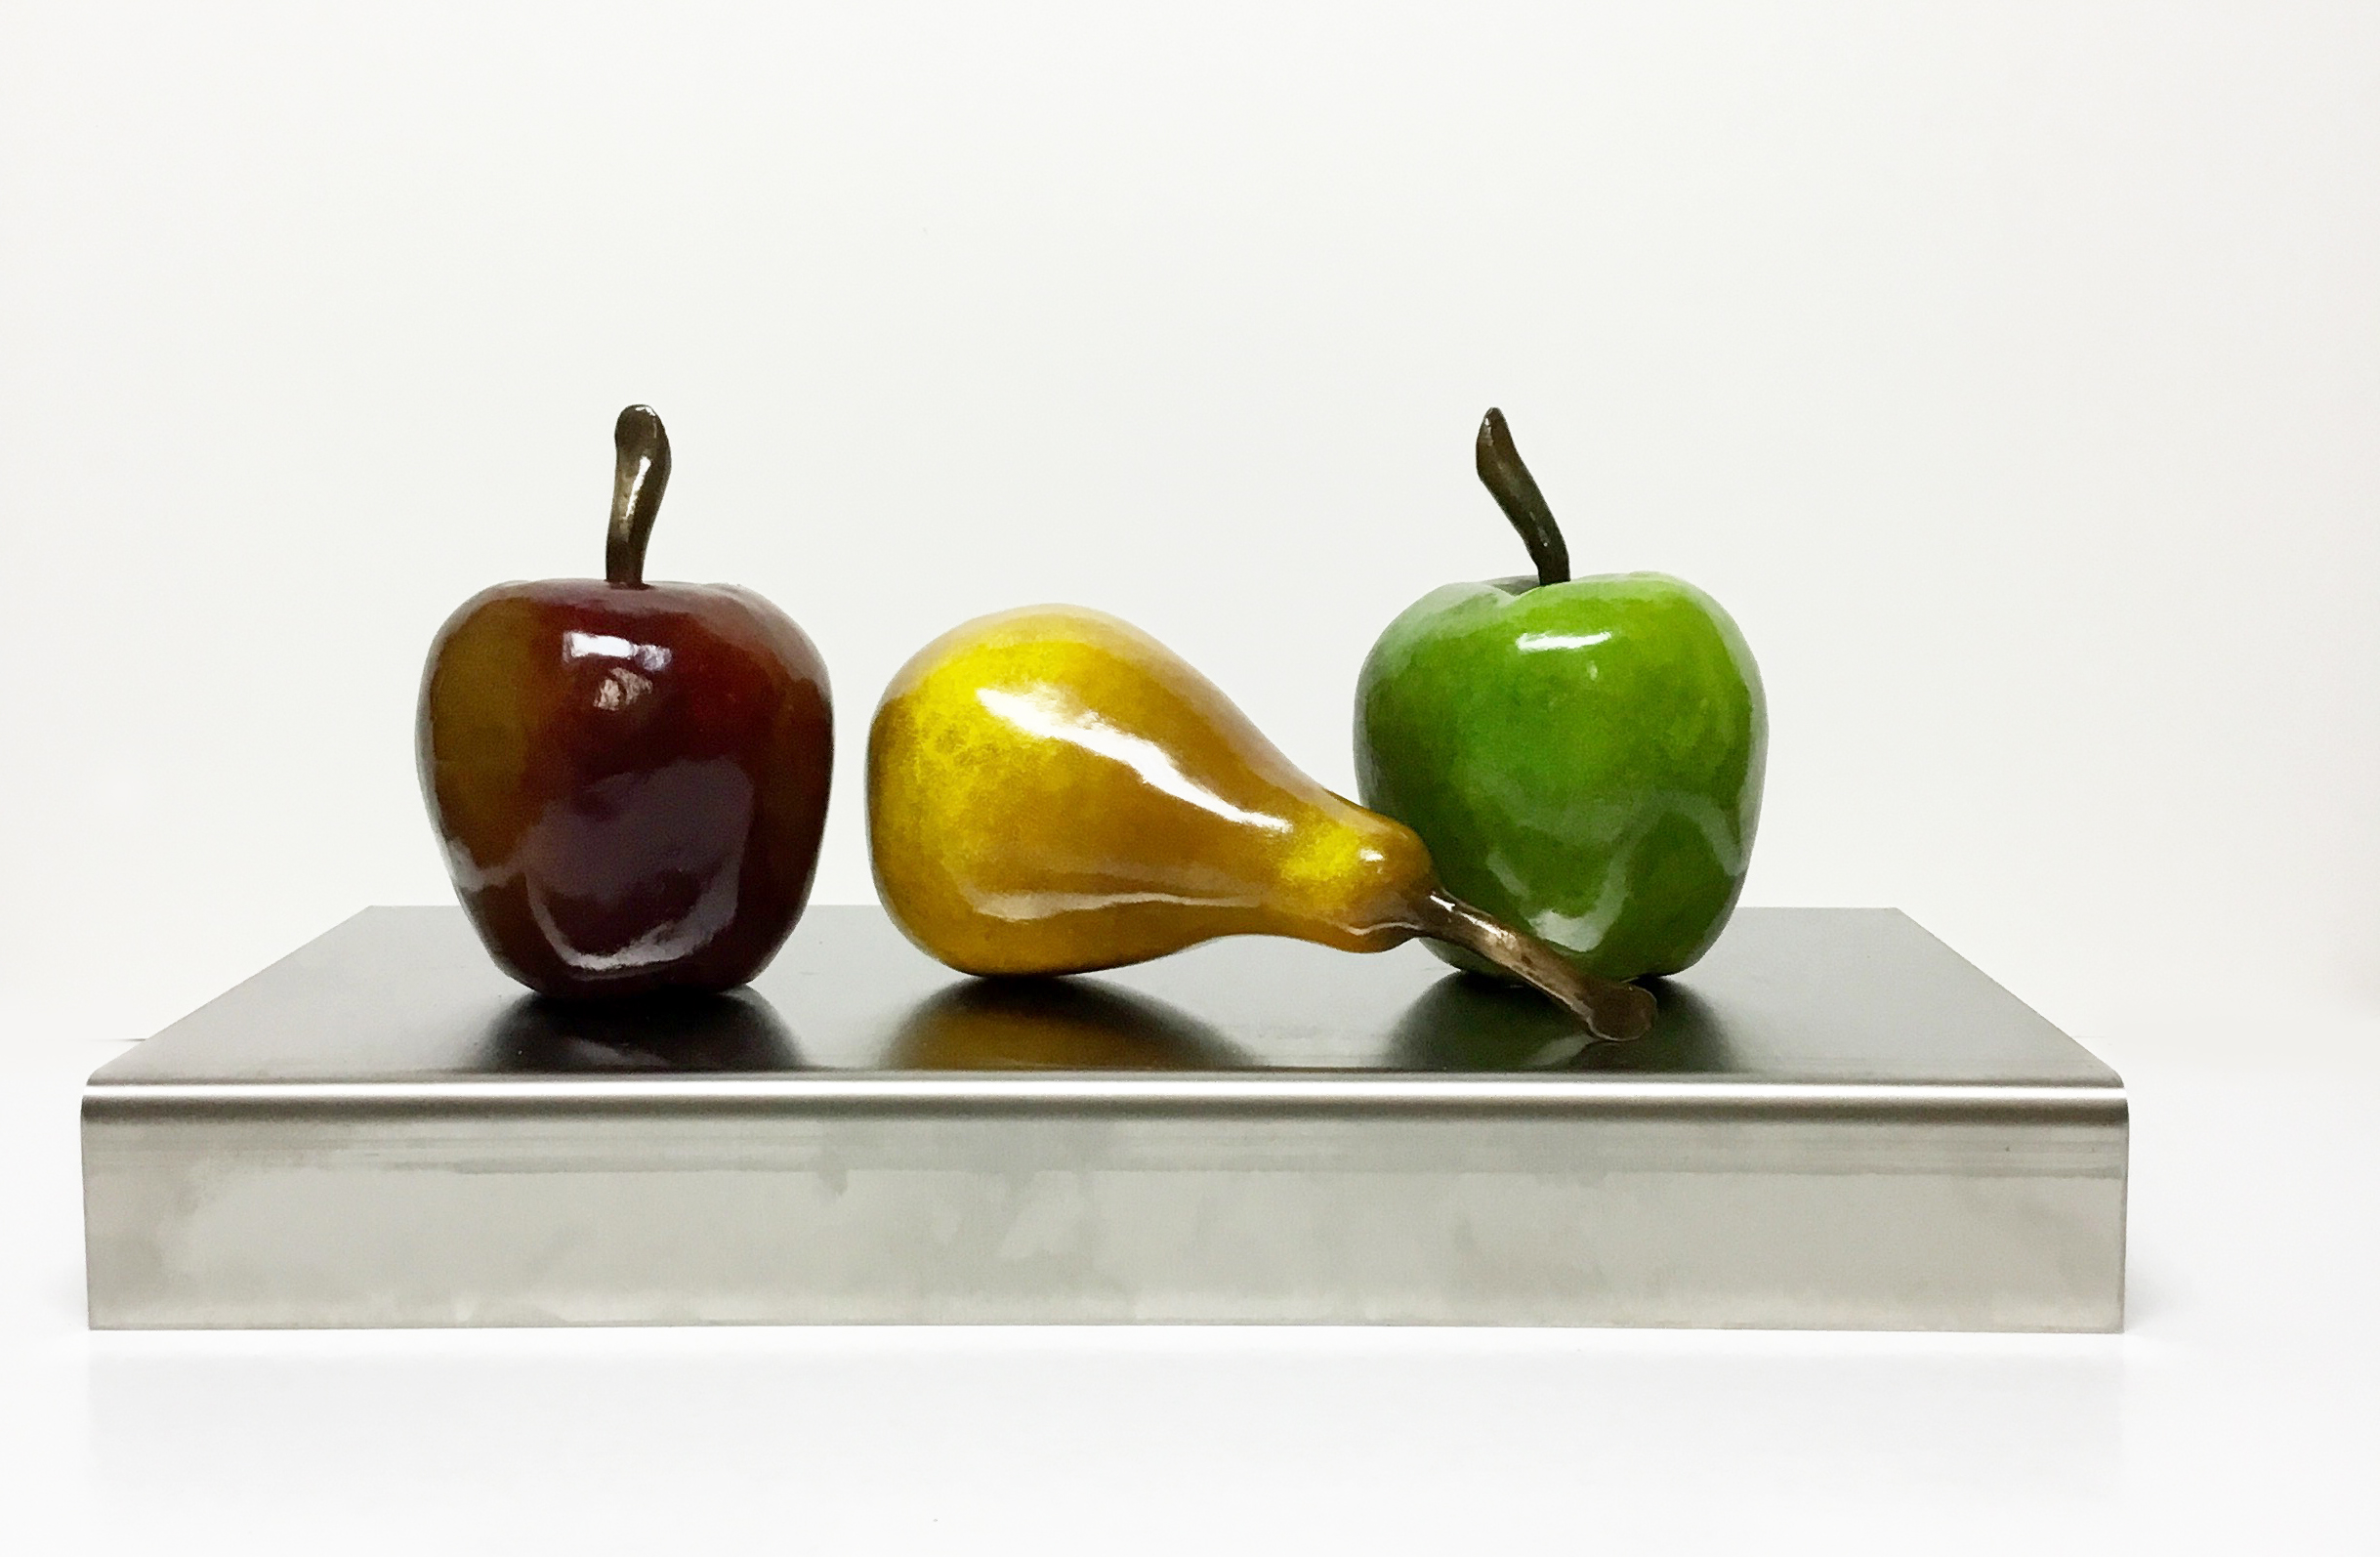 """2 APPLES AND A PEAR ON STAINLESS STEEL BASE 7""""X11""""X8"""""""